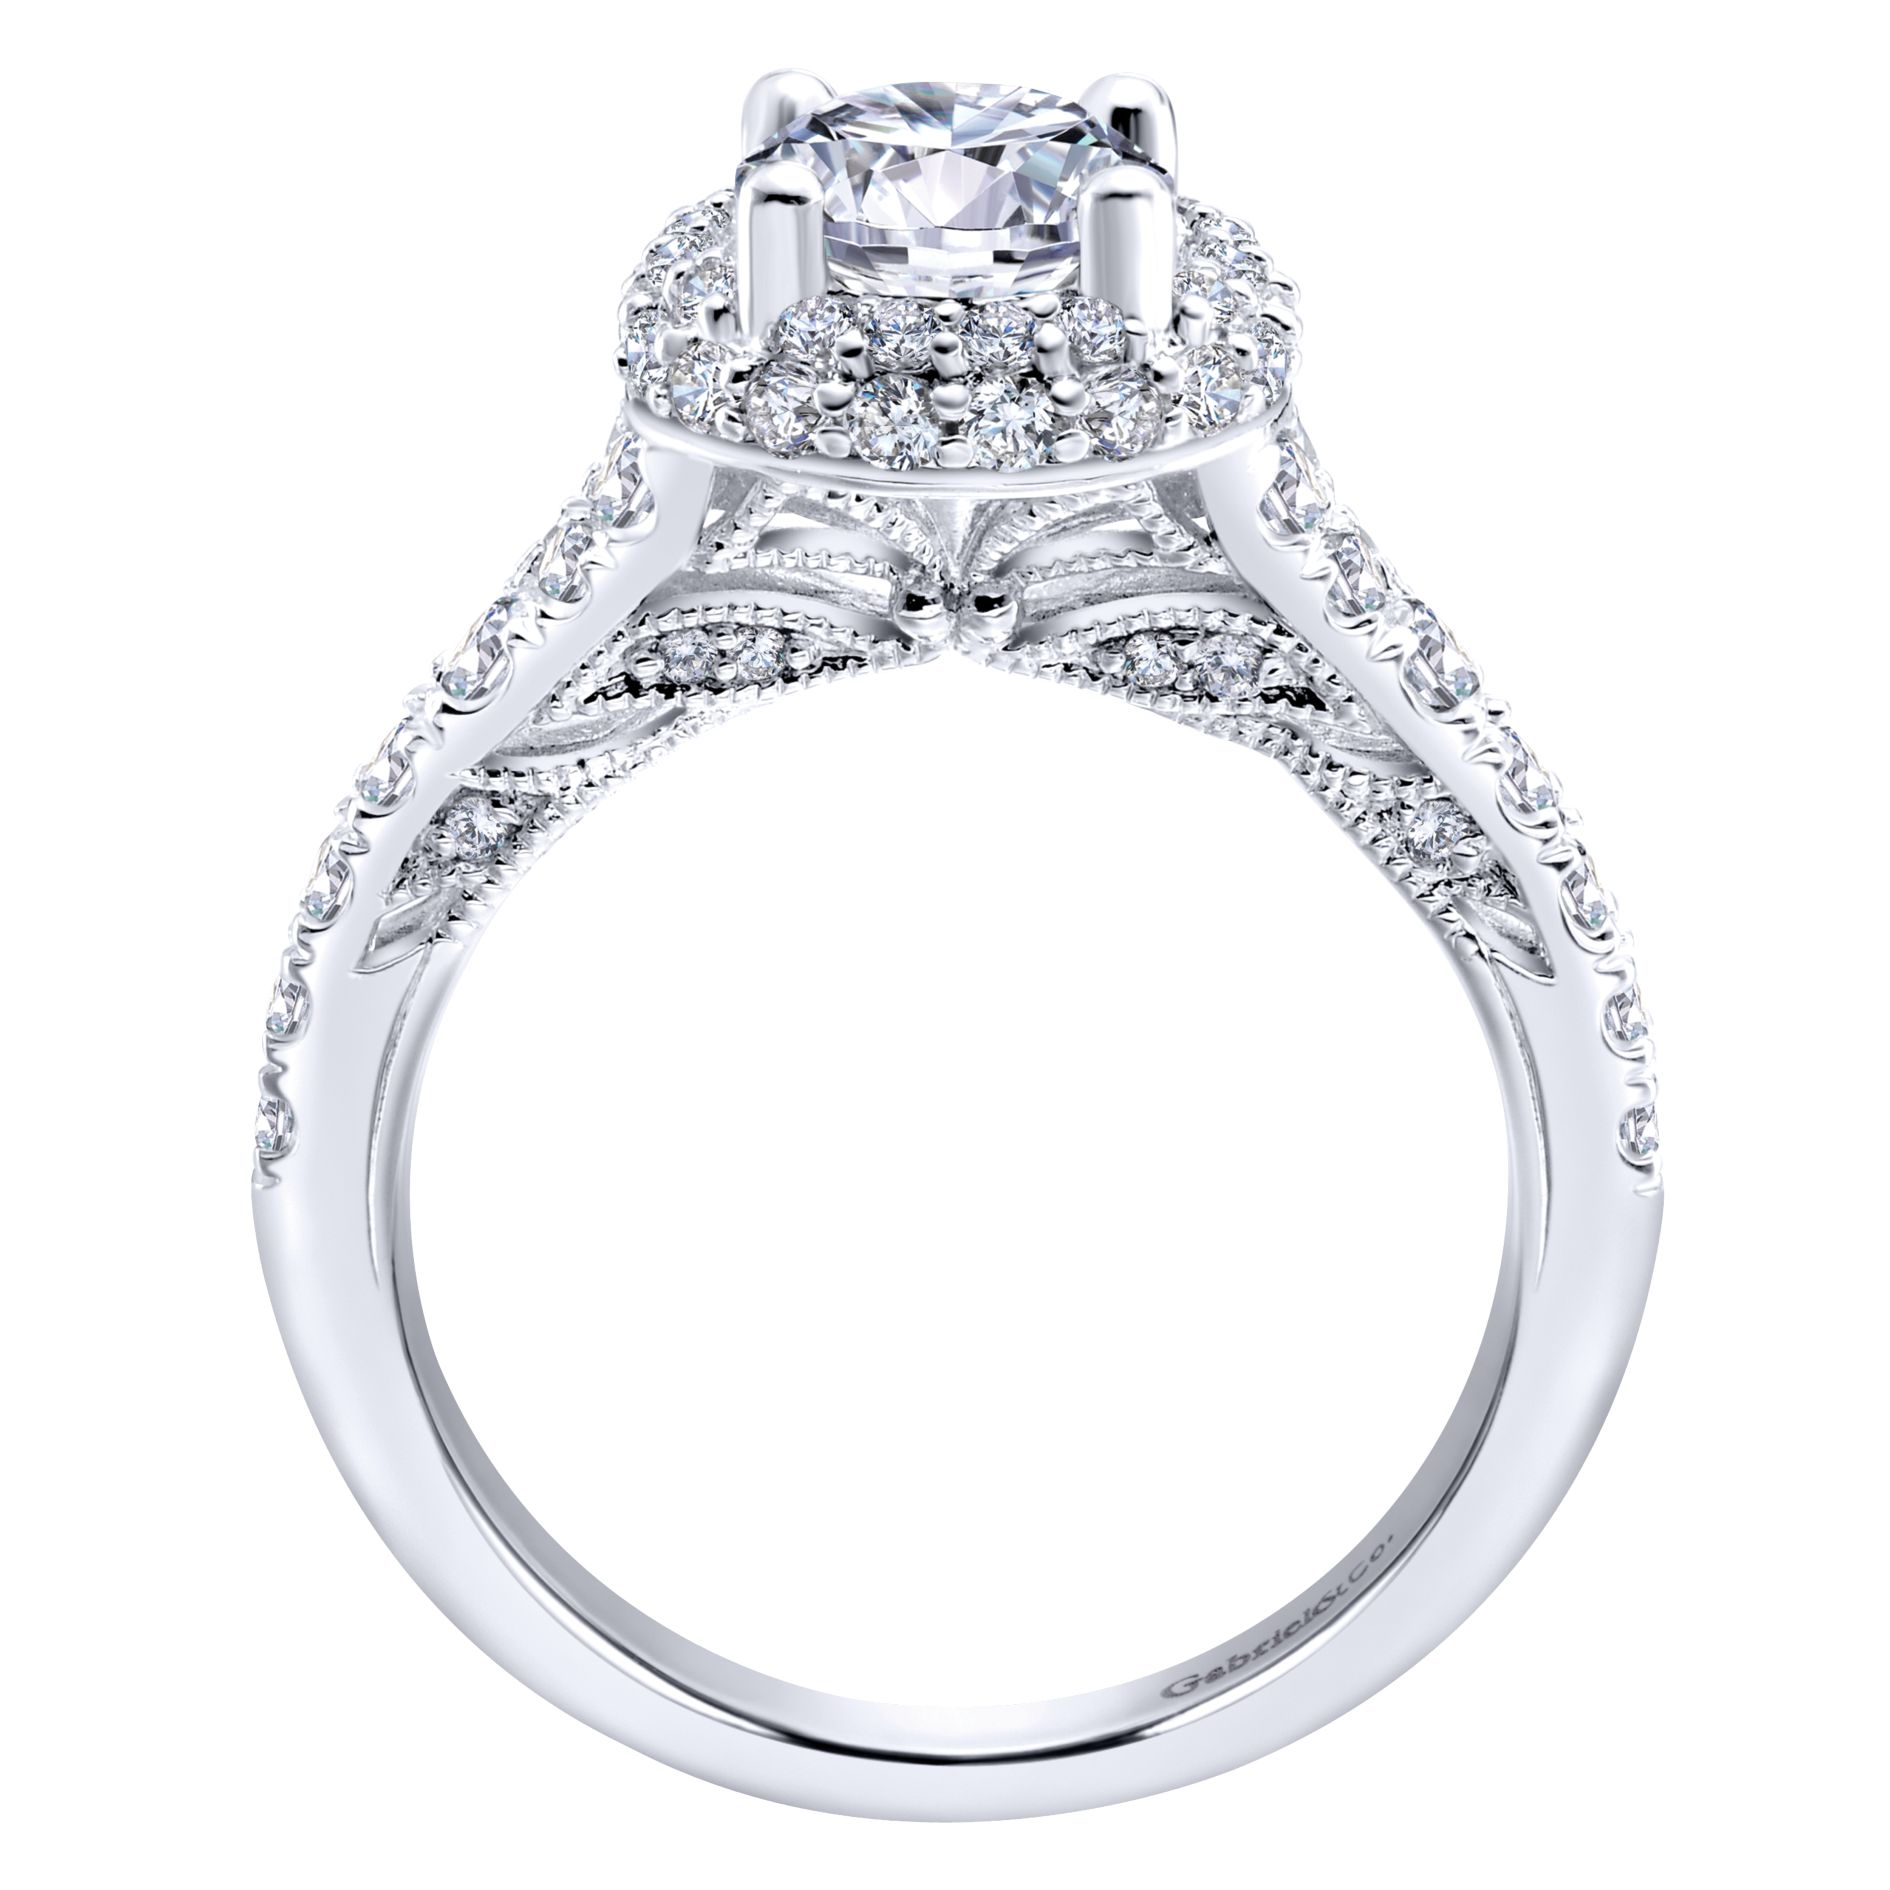 Engagement Rings - WHITE GOLD ROUND HALO DIAMOND ENGAGEMENT RING - image #2